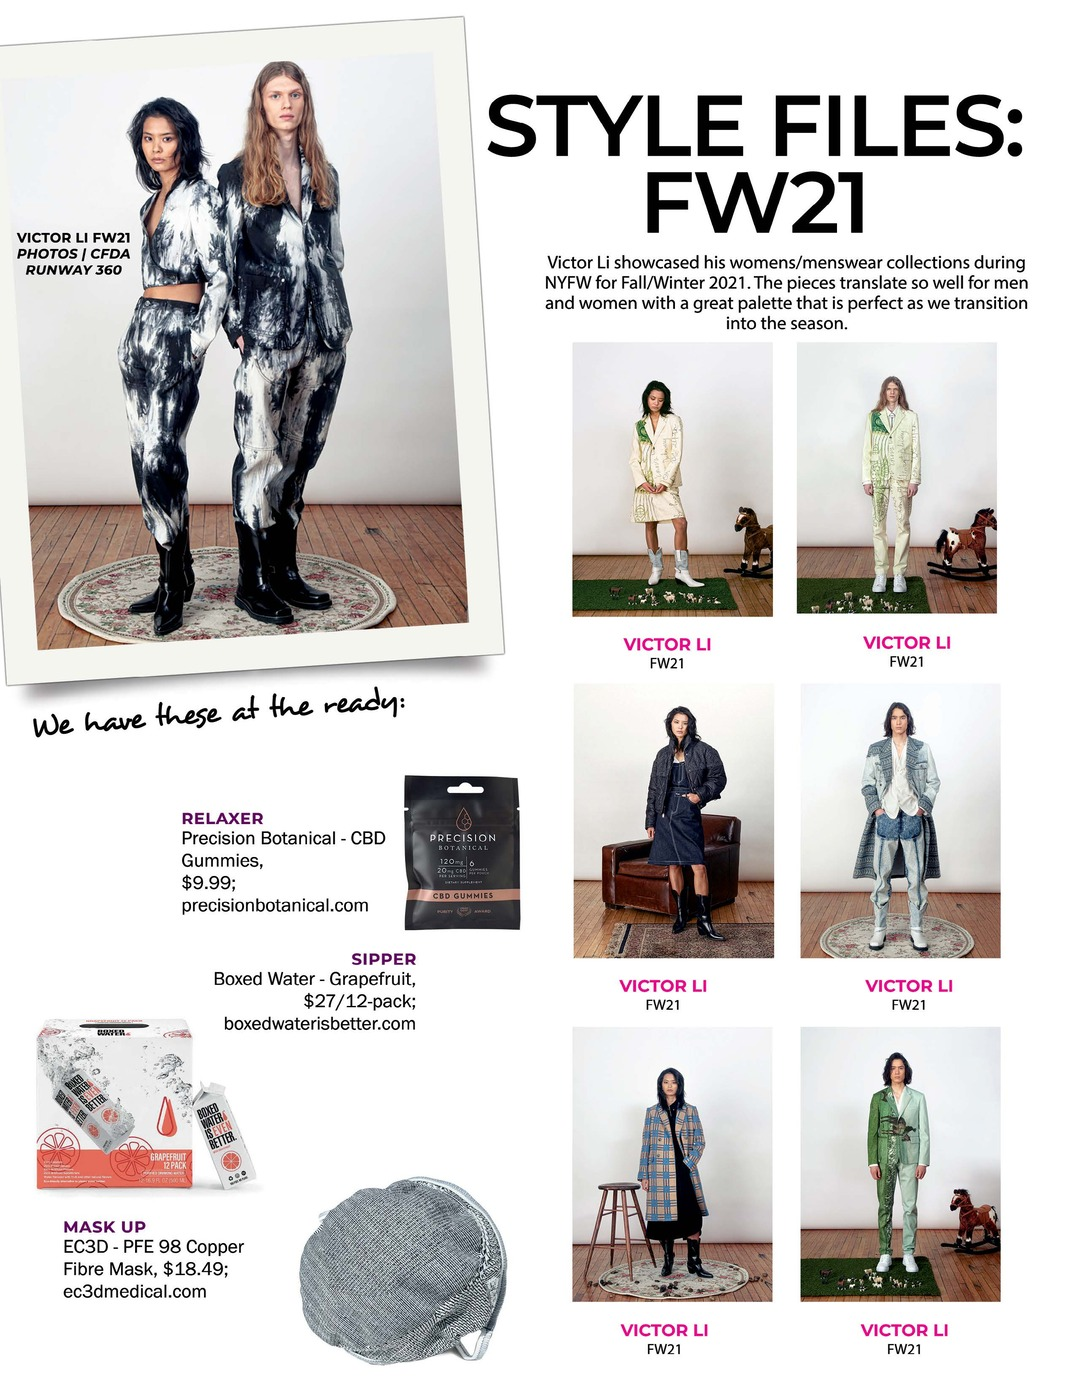 Page 112 of Athleisure Mag #62 Feb 2021 | Style Files FW21